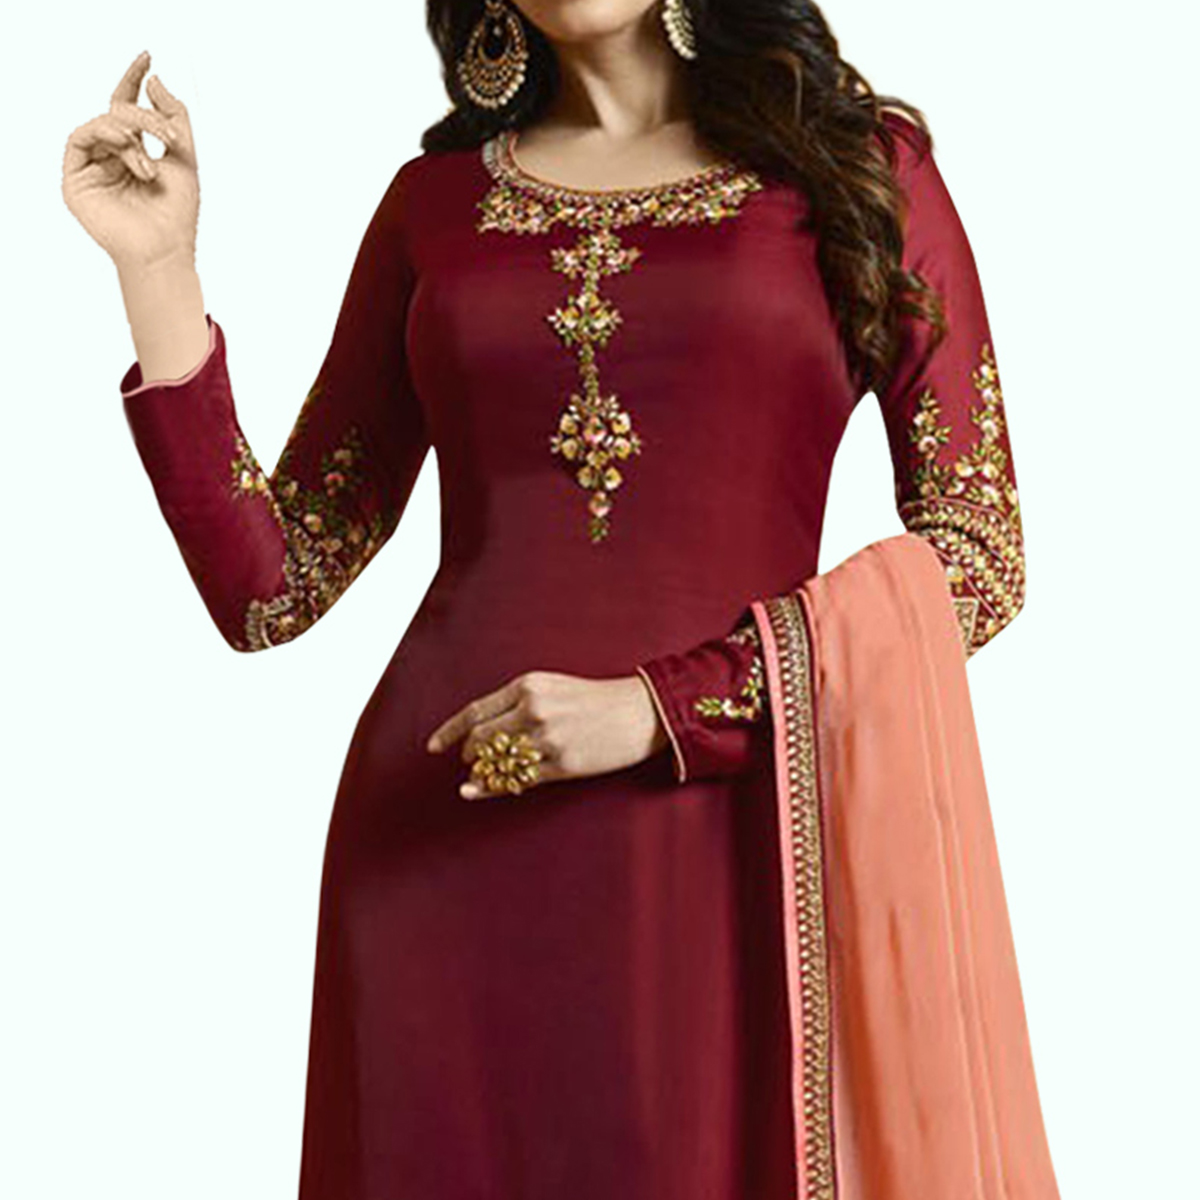 Pleasance Red Colored Partywear Embroidered Satin-Georgette Suit